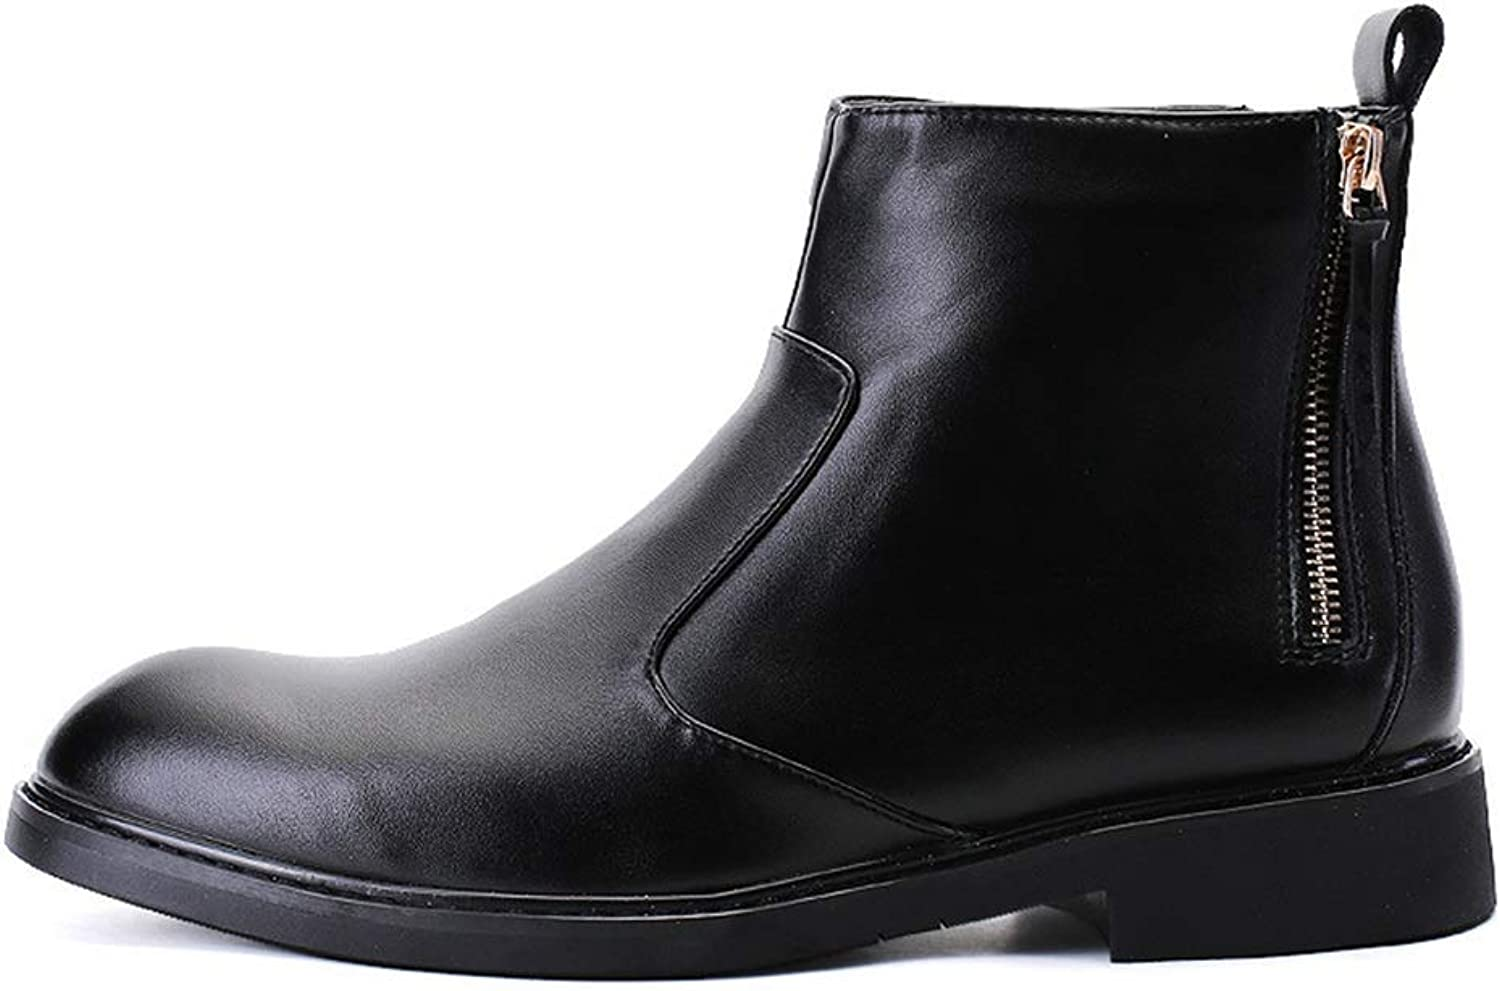 Men'S Boots, Leather Fall Winter 2019 In The British Zipper Pointed Booties Korean Hair Stylist Trend Casual Boots Trend High-Top Desert Boot Comfortable Running Boot Walking Boot Hiking Boot Wild XUE